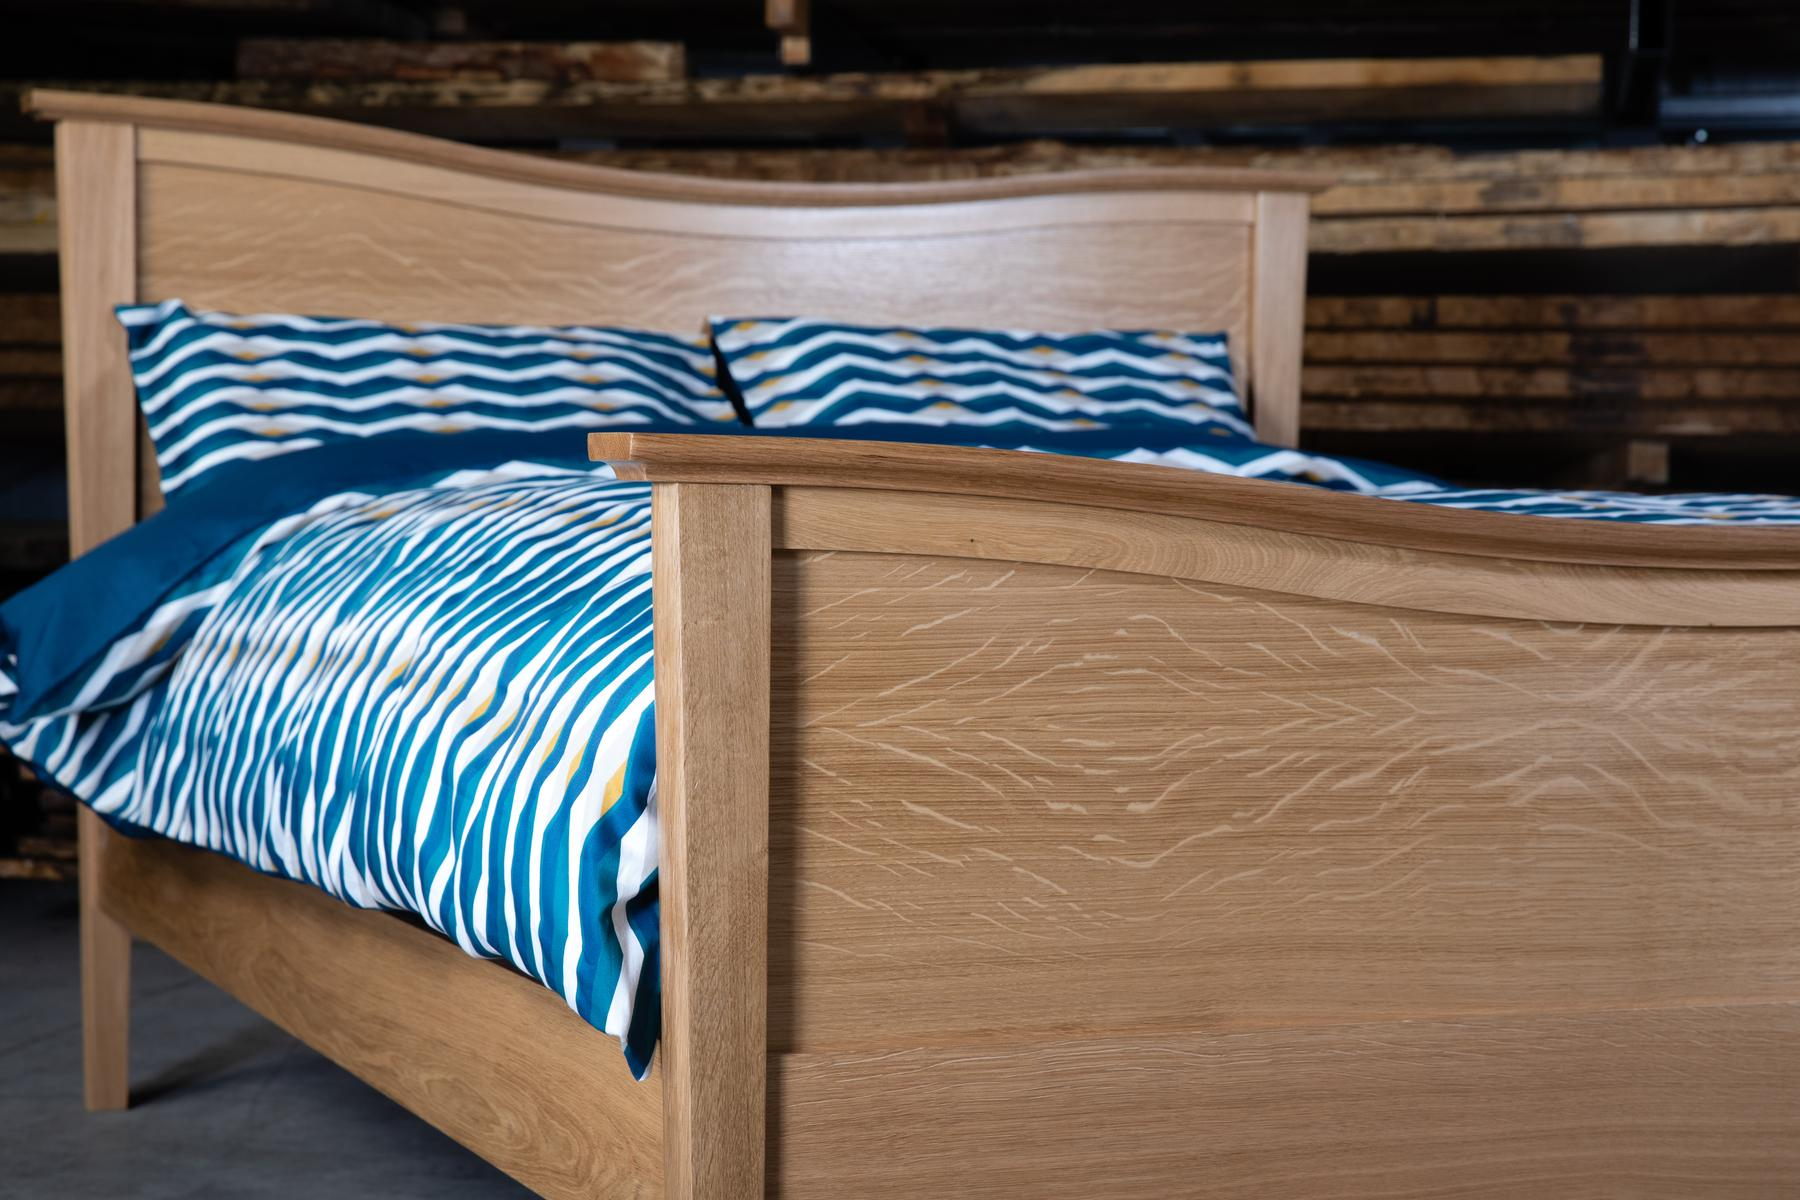 Bespoke Hardwood Beds